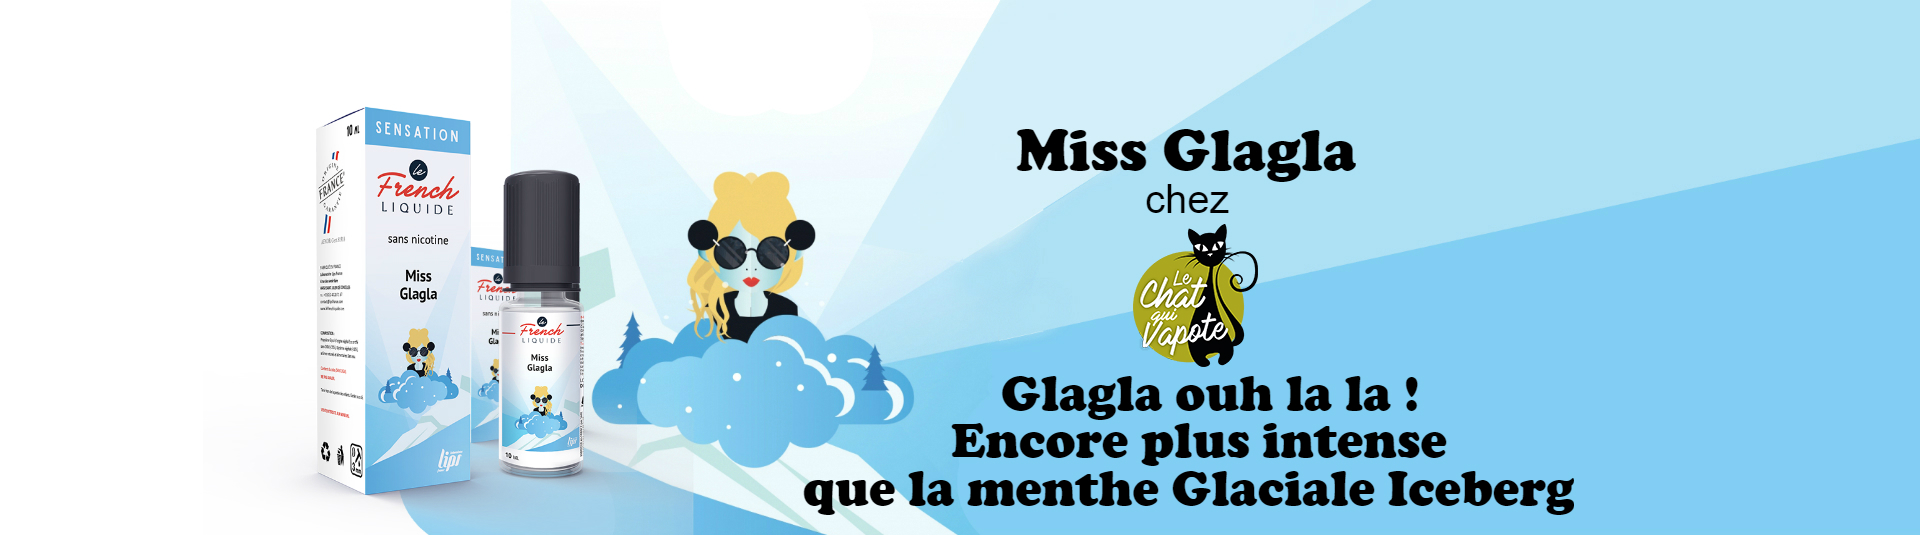 chat-qui-vapote-miss-glagla-french-liquide-004